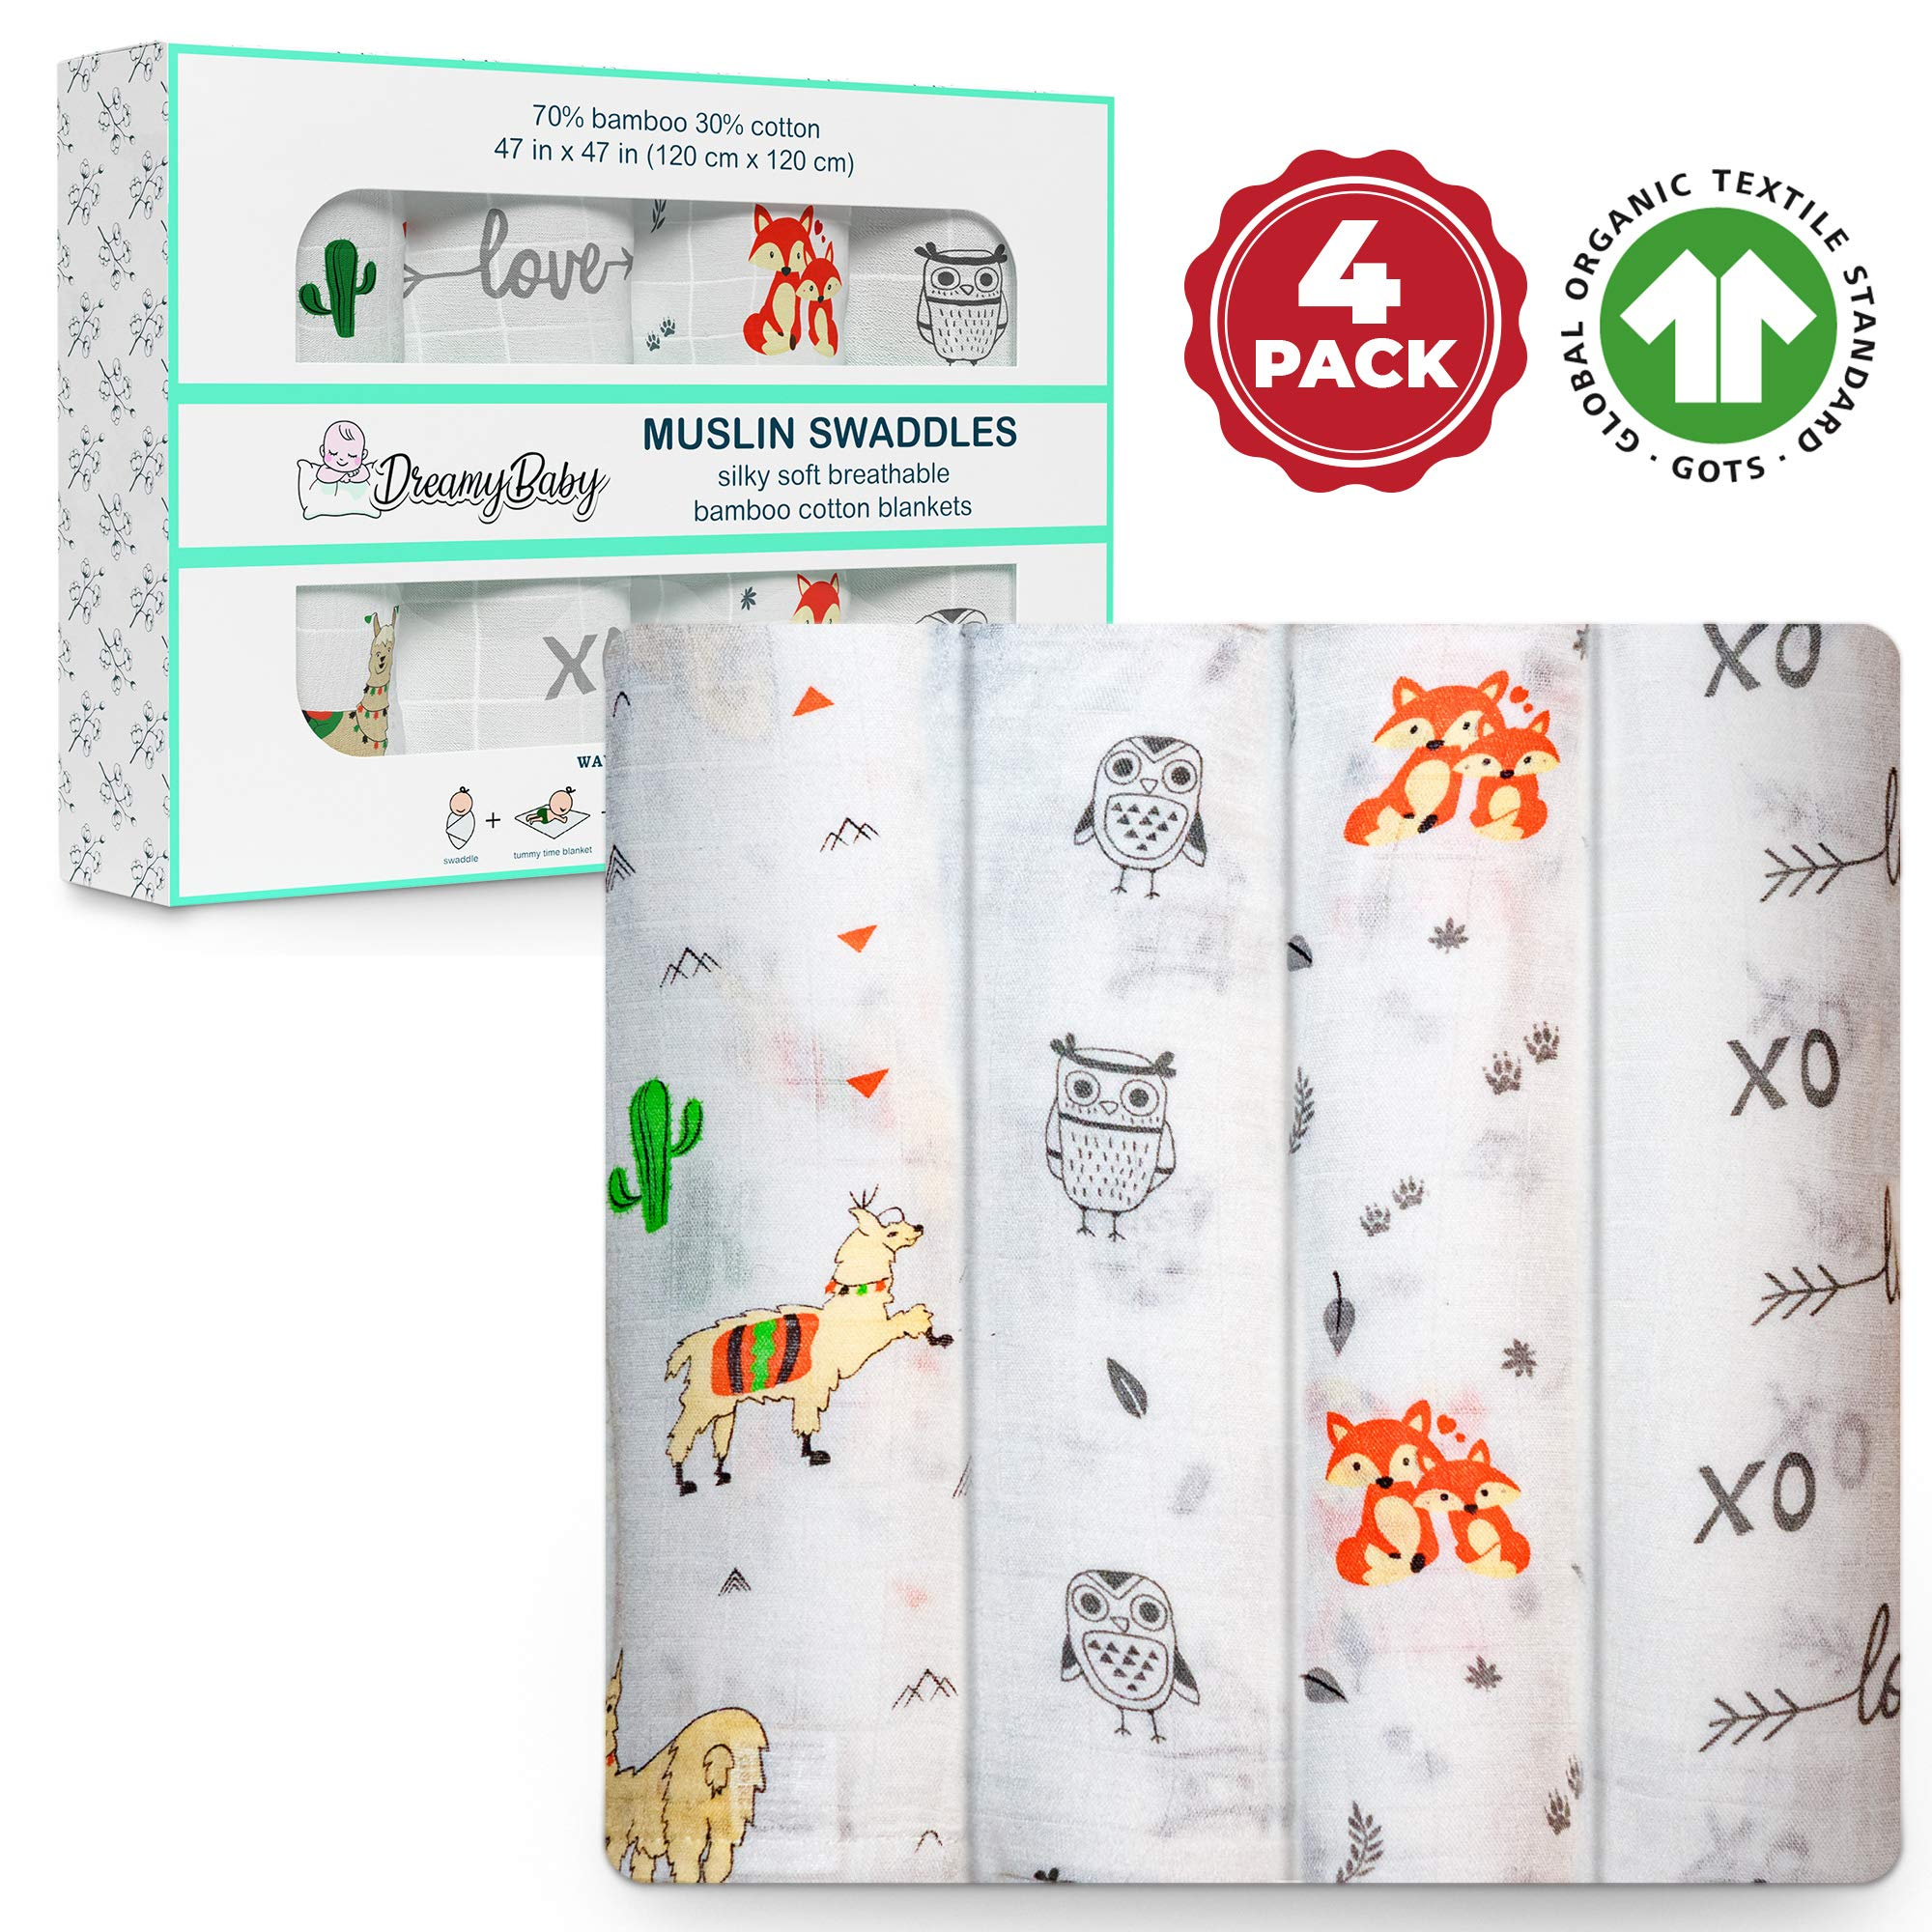 Muslin Swaddle Blankets, Baby Swaddle Wrap for Boys and Girls, Organic Cotton GOTS Certified Bamboo Blanket, XL Swaddle 47x47, Receiving Blankets, Fox Swaddle, Owl, Xo Love, Cactus, Baby Shower Gift